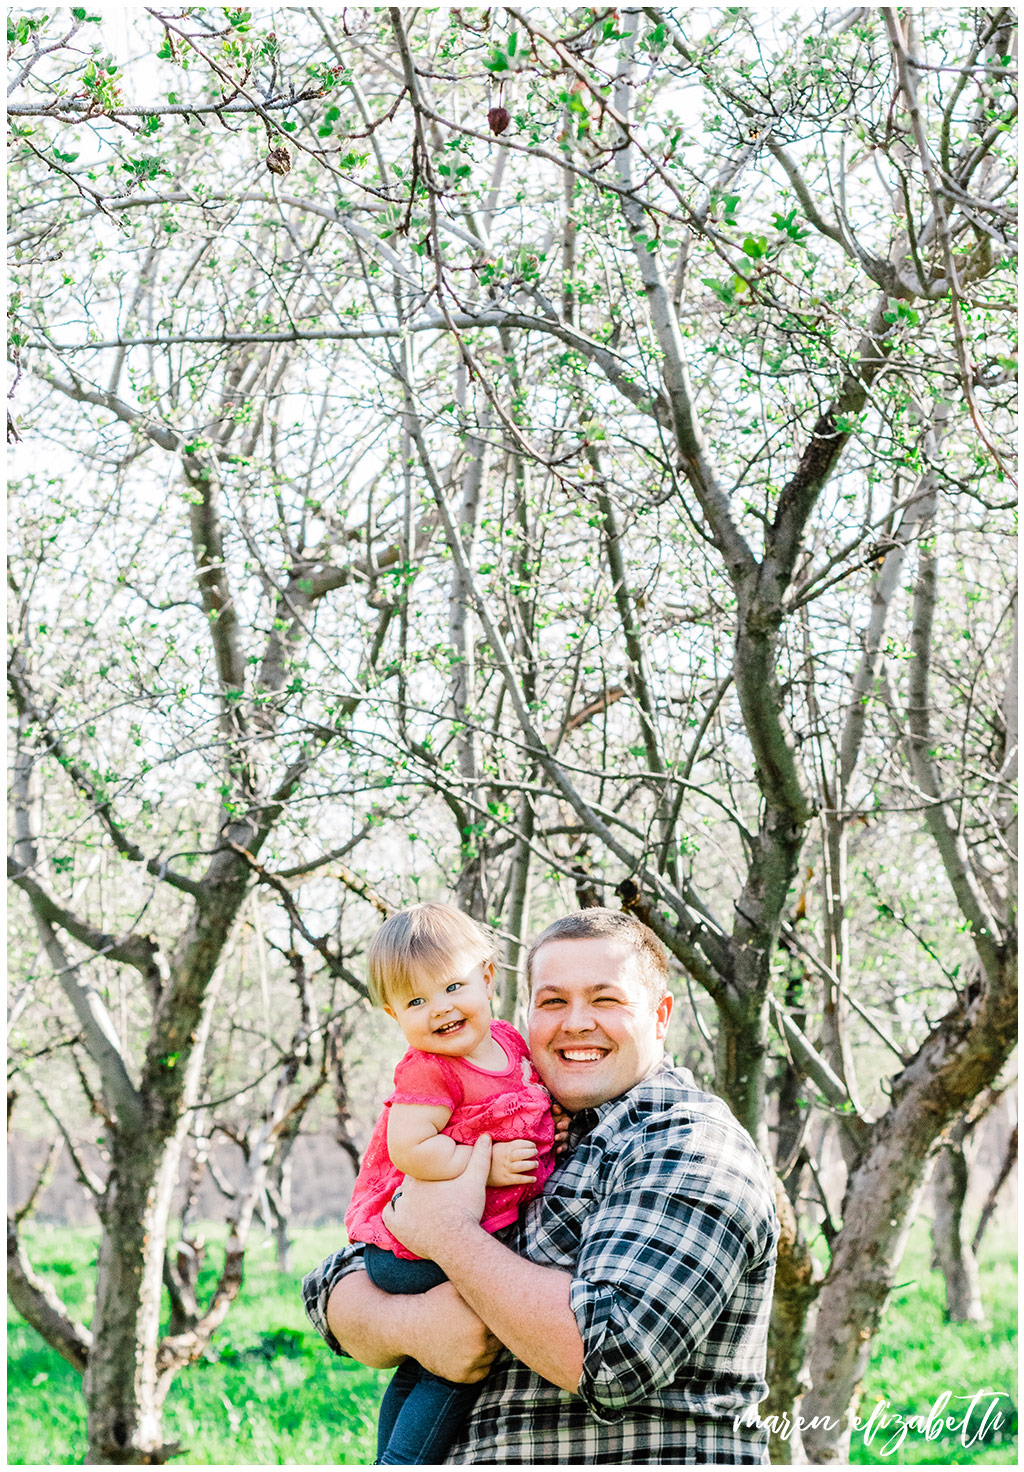 Daddy & Me mini session at the provo orchard with a toddler. I love taking pictures of toddlers because of their wiggly energy and huge personalities. | Gilbert Family Photographer | Maren Elizabeth Photography